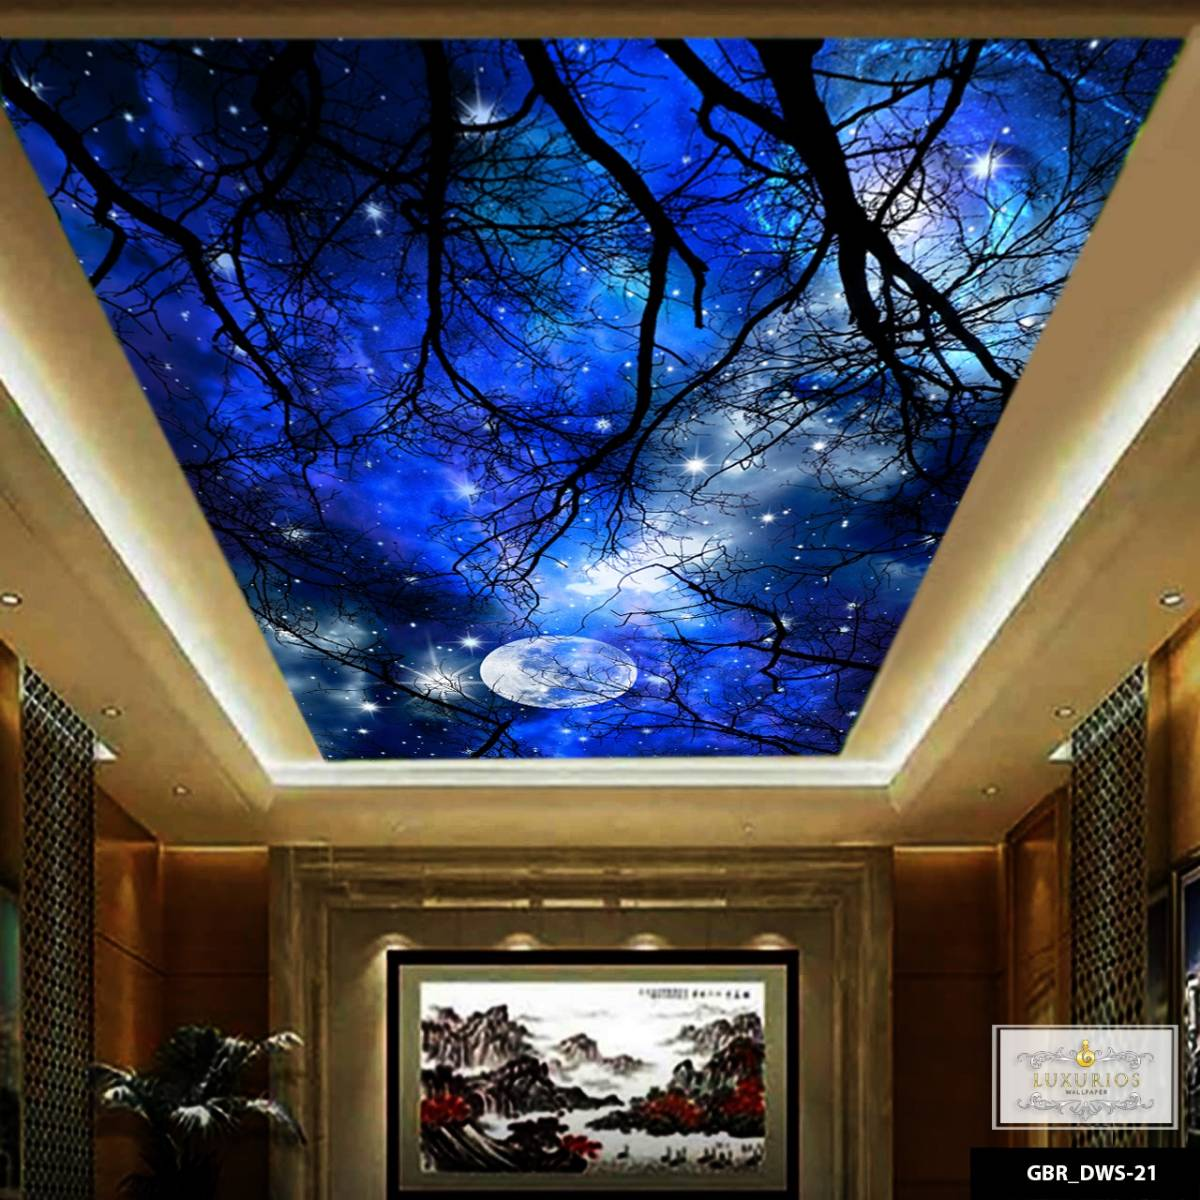 Wallpaper Custom Wallpaper 3d Wallpaper Plafon Langit Malam